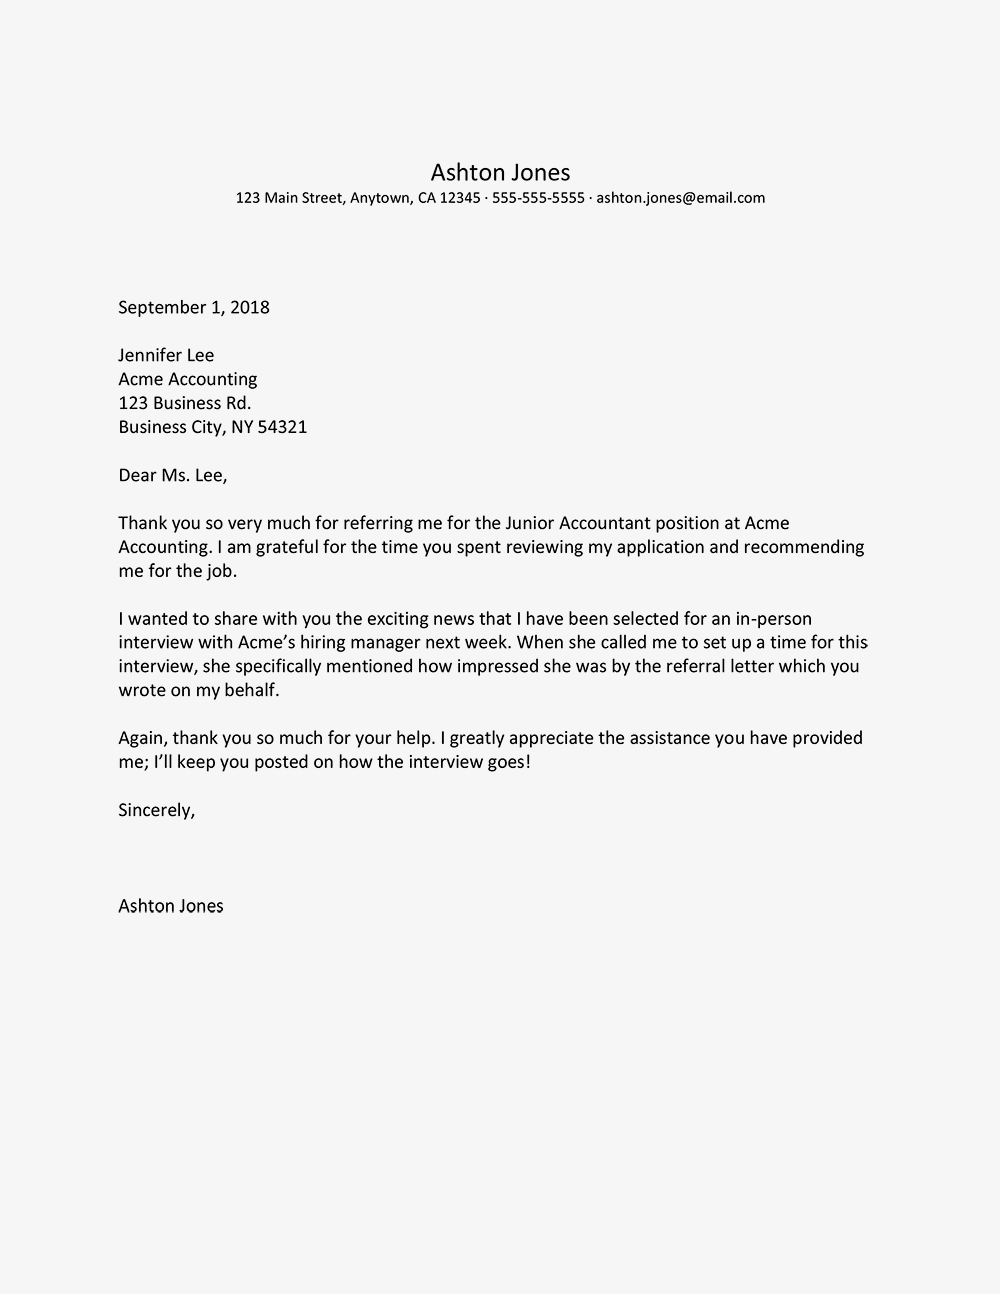 Thank You Letter for a Job Referral